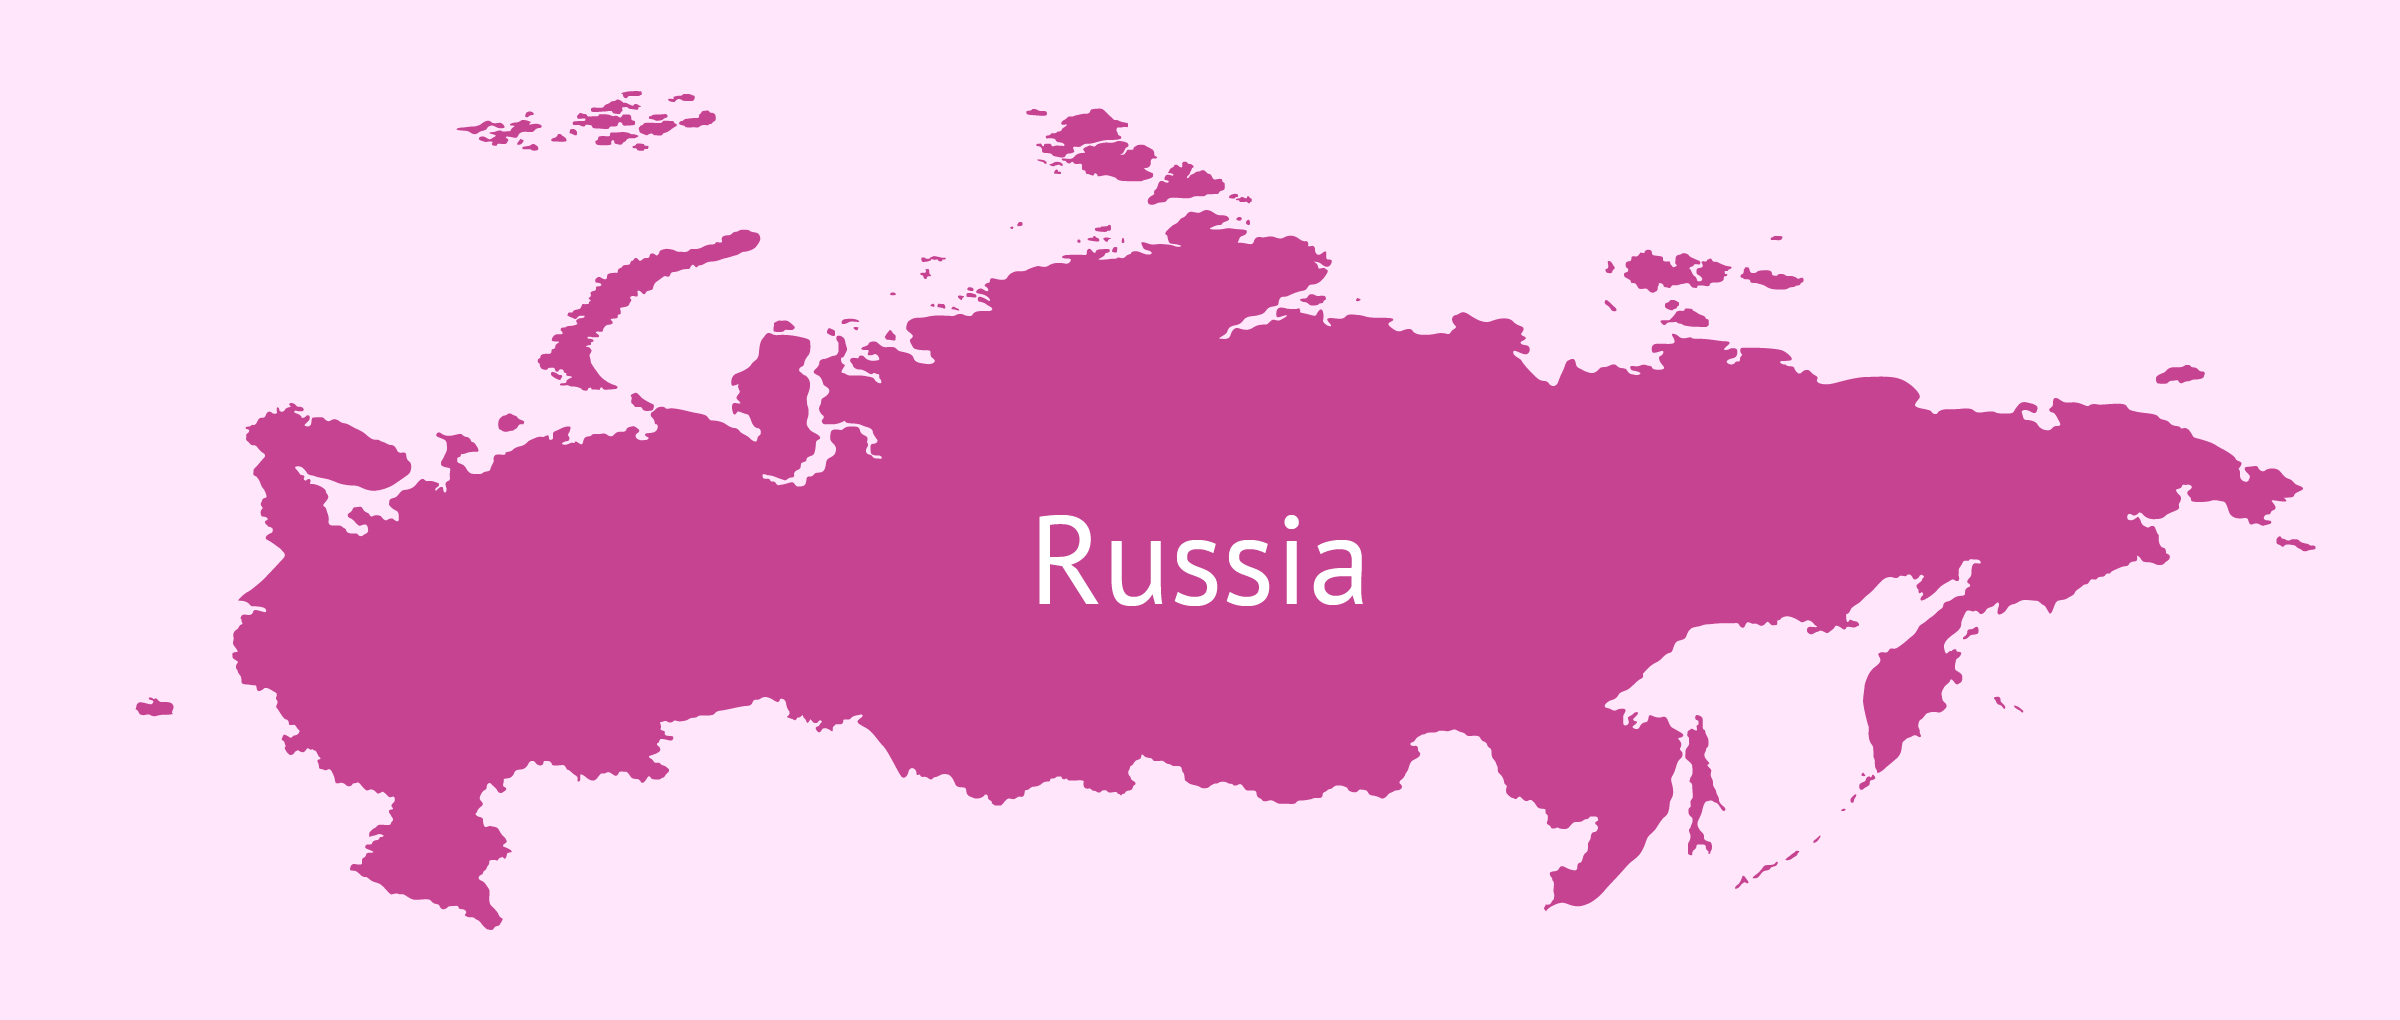 Is Surrogacy Legal in Russia? - Law, Cost & Requirements